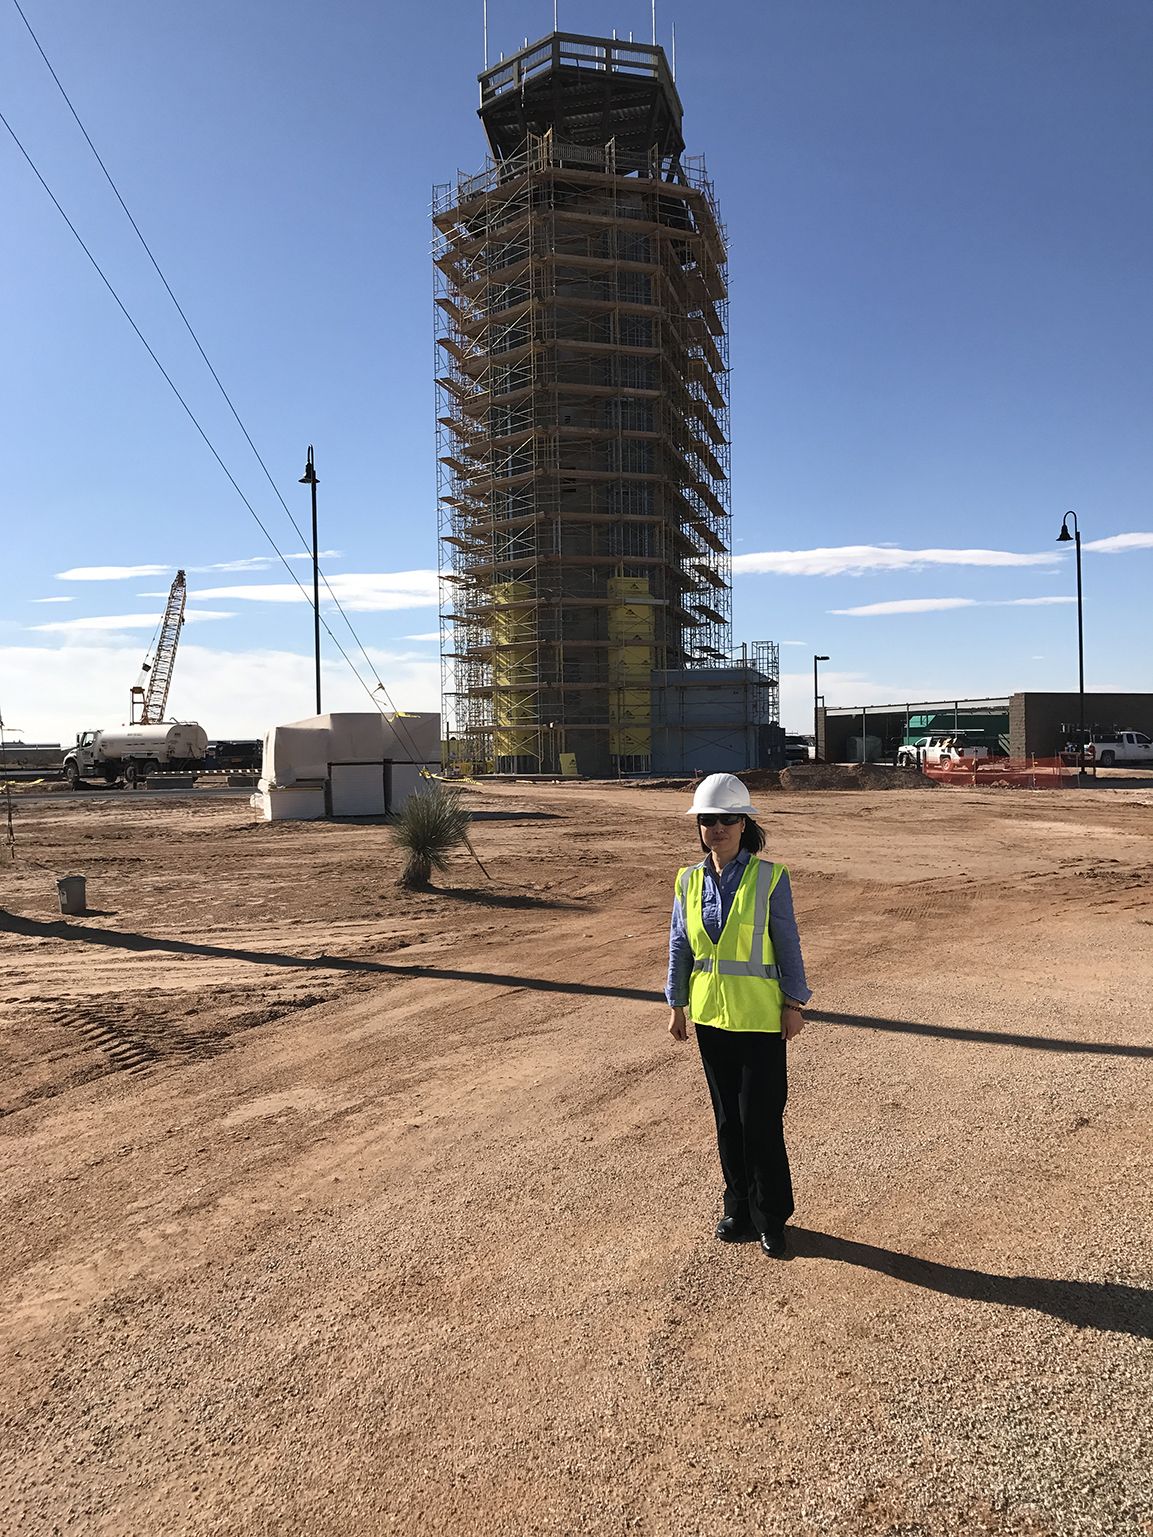 Yumei Wang on the construction site of an air traffic control tower